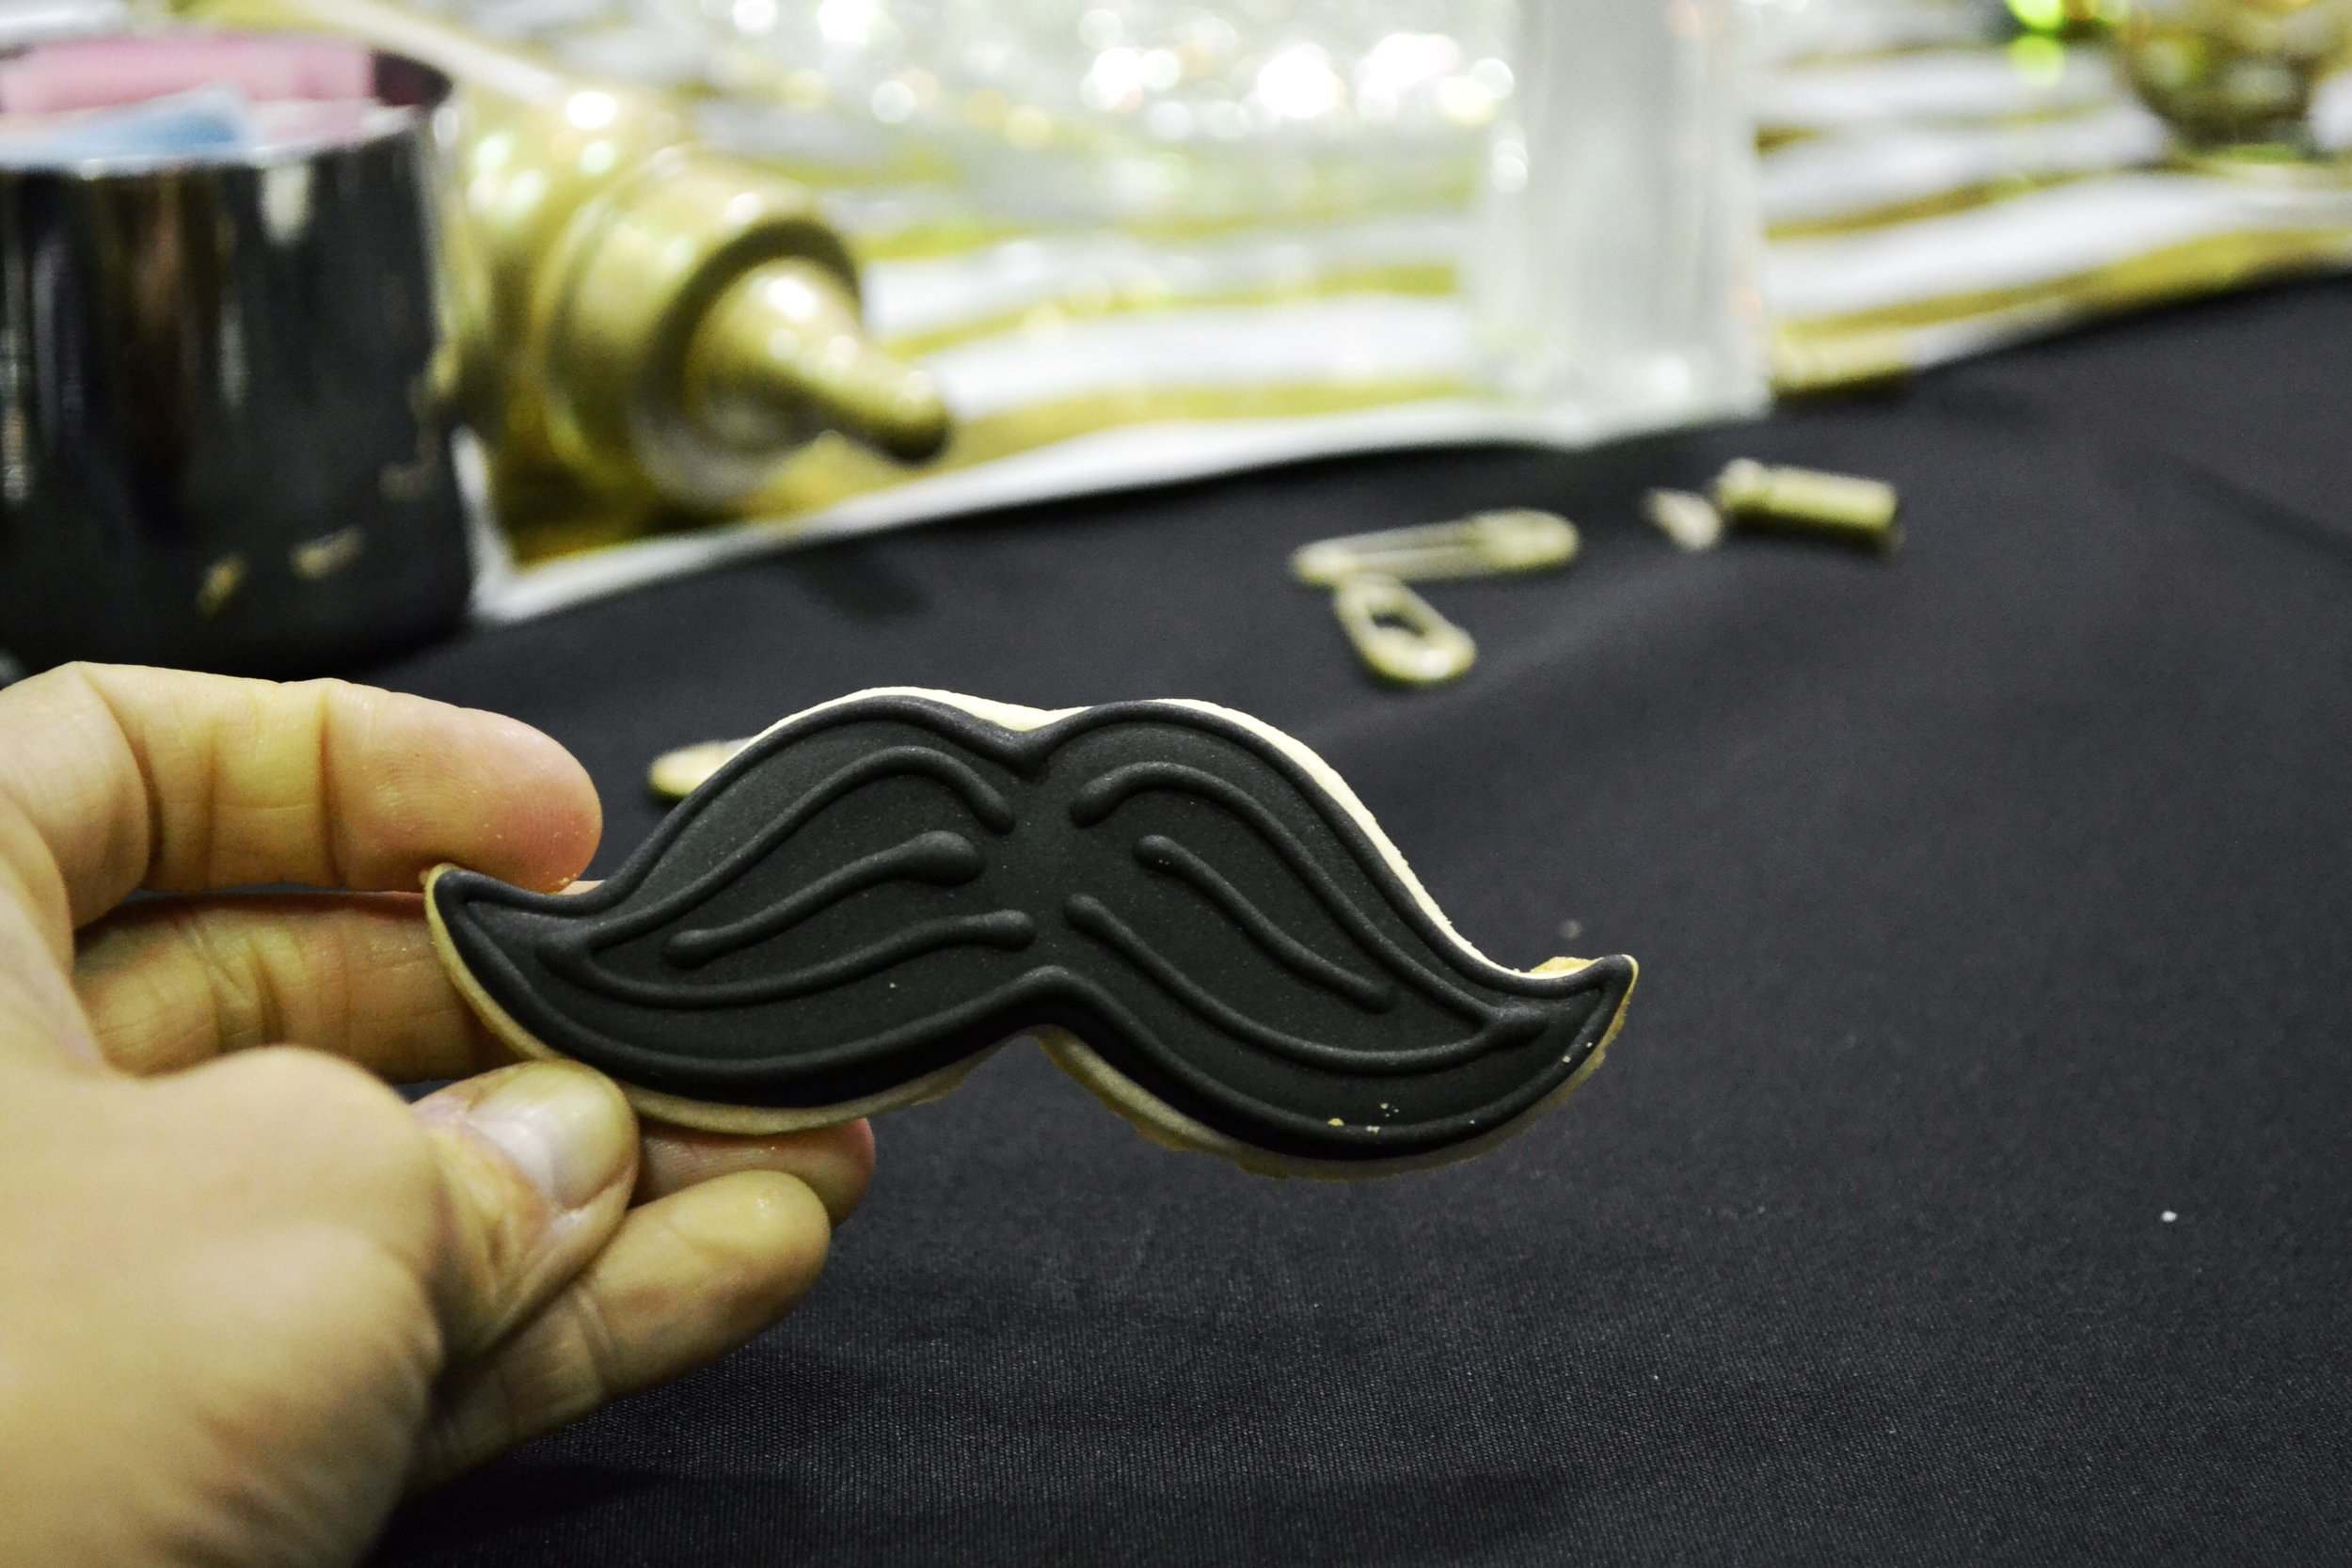 Mustache Cookies used during the Surprise Gender Reveal